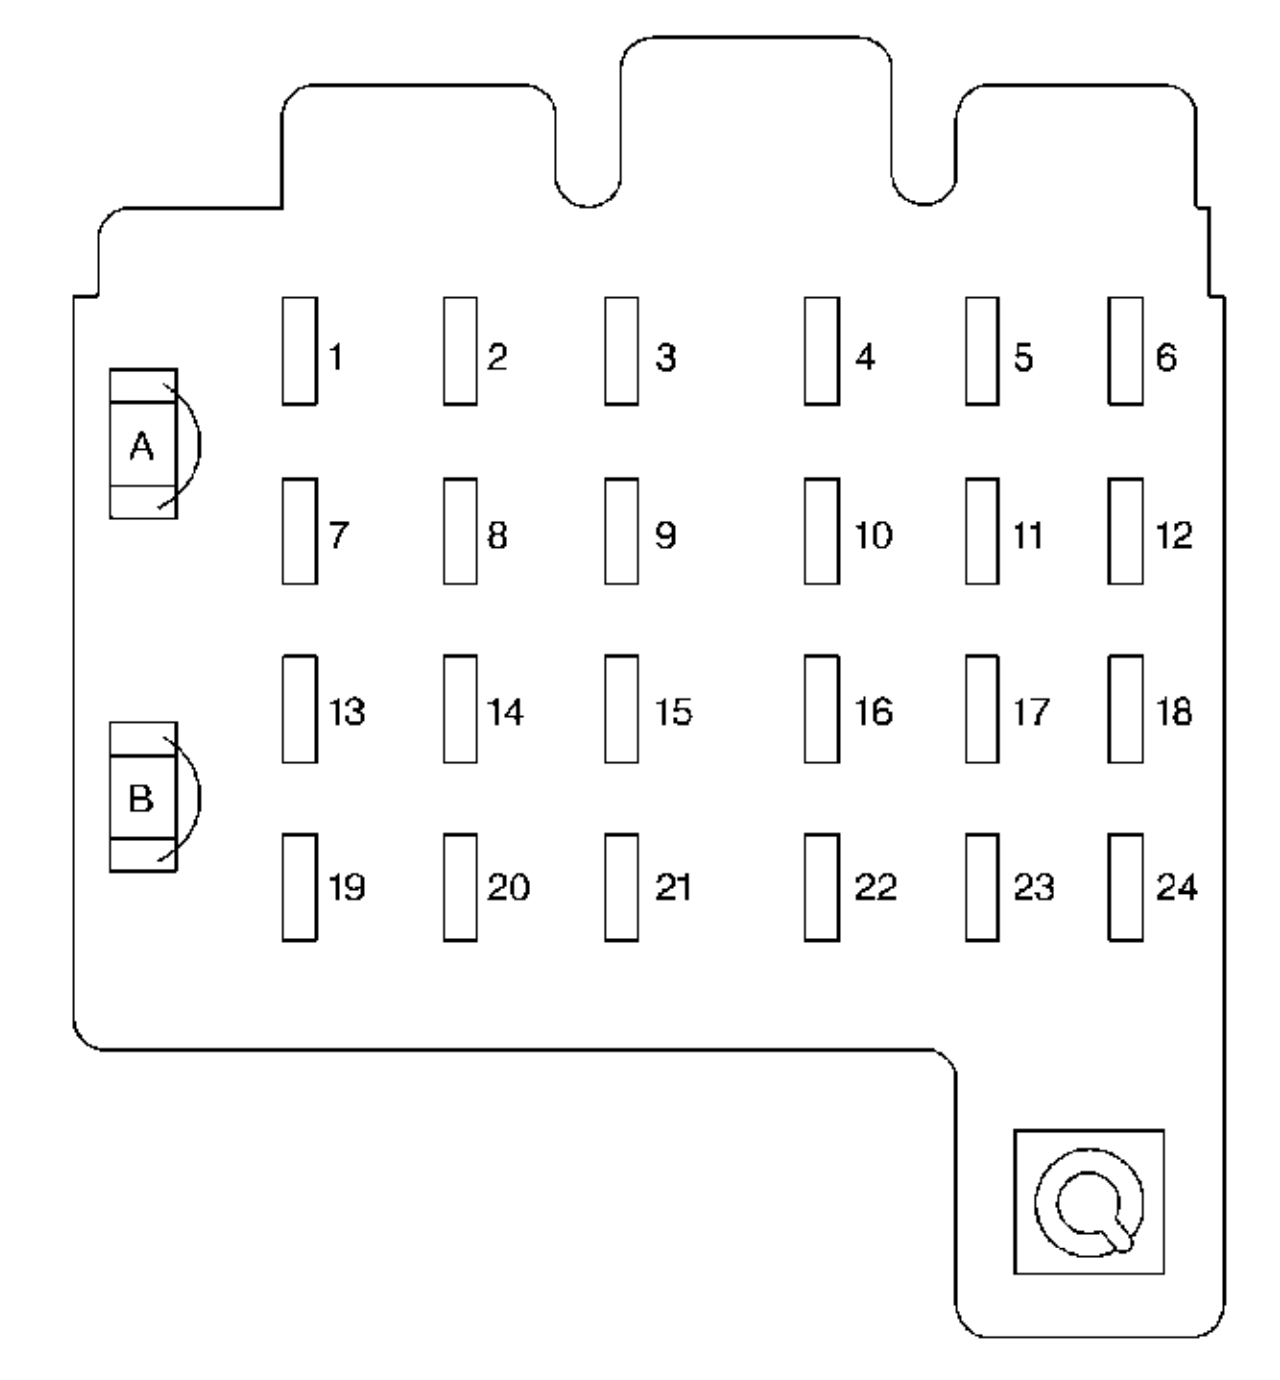 hight resolution of 1998 gmc fuse box diagram wiring diagram inside 1998 kenworth t800 fuse panel diagram 98 gmc